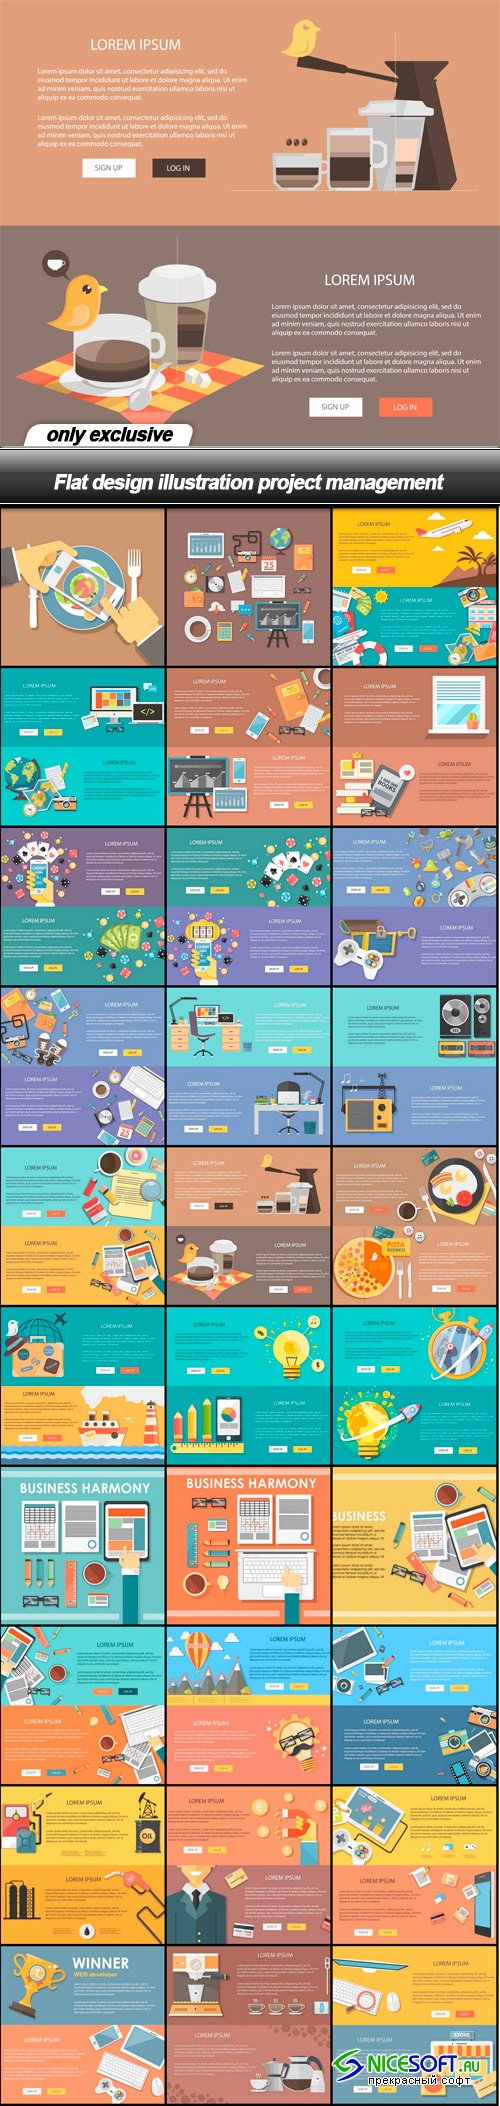 Flat design illustration project management